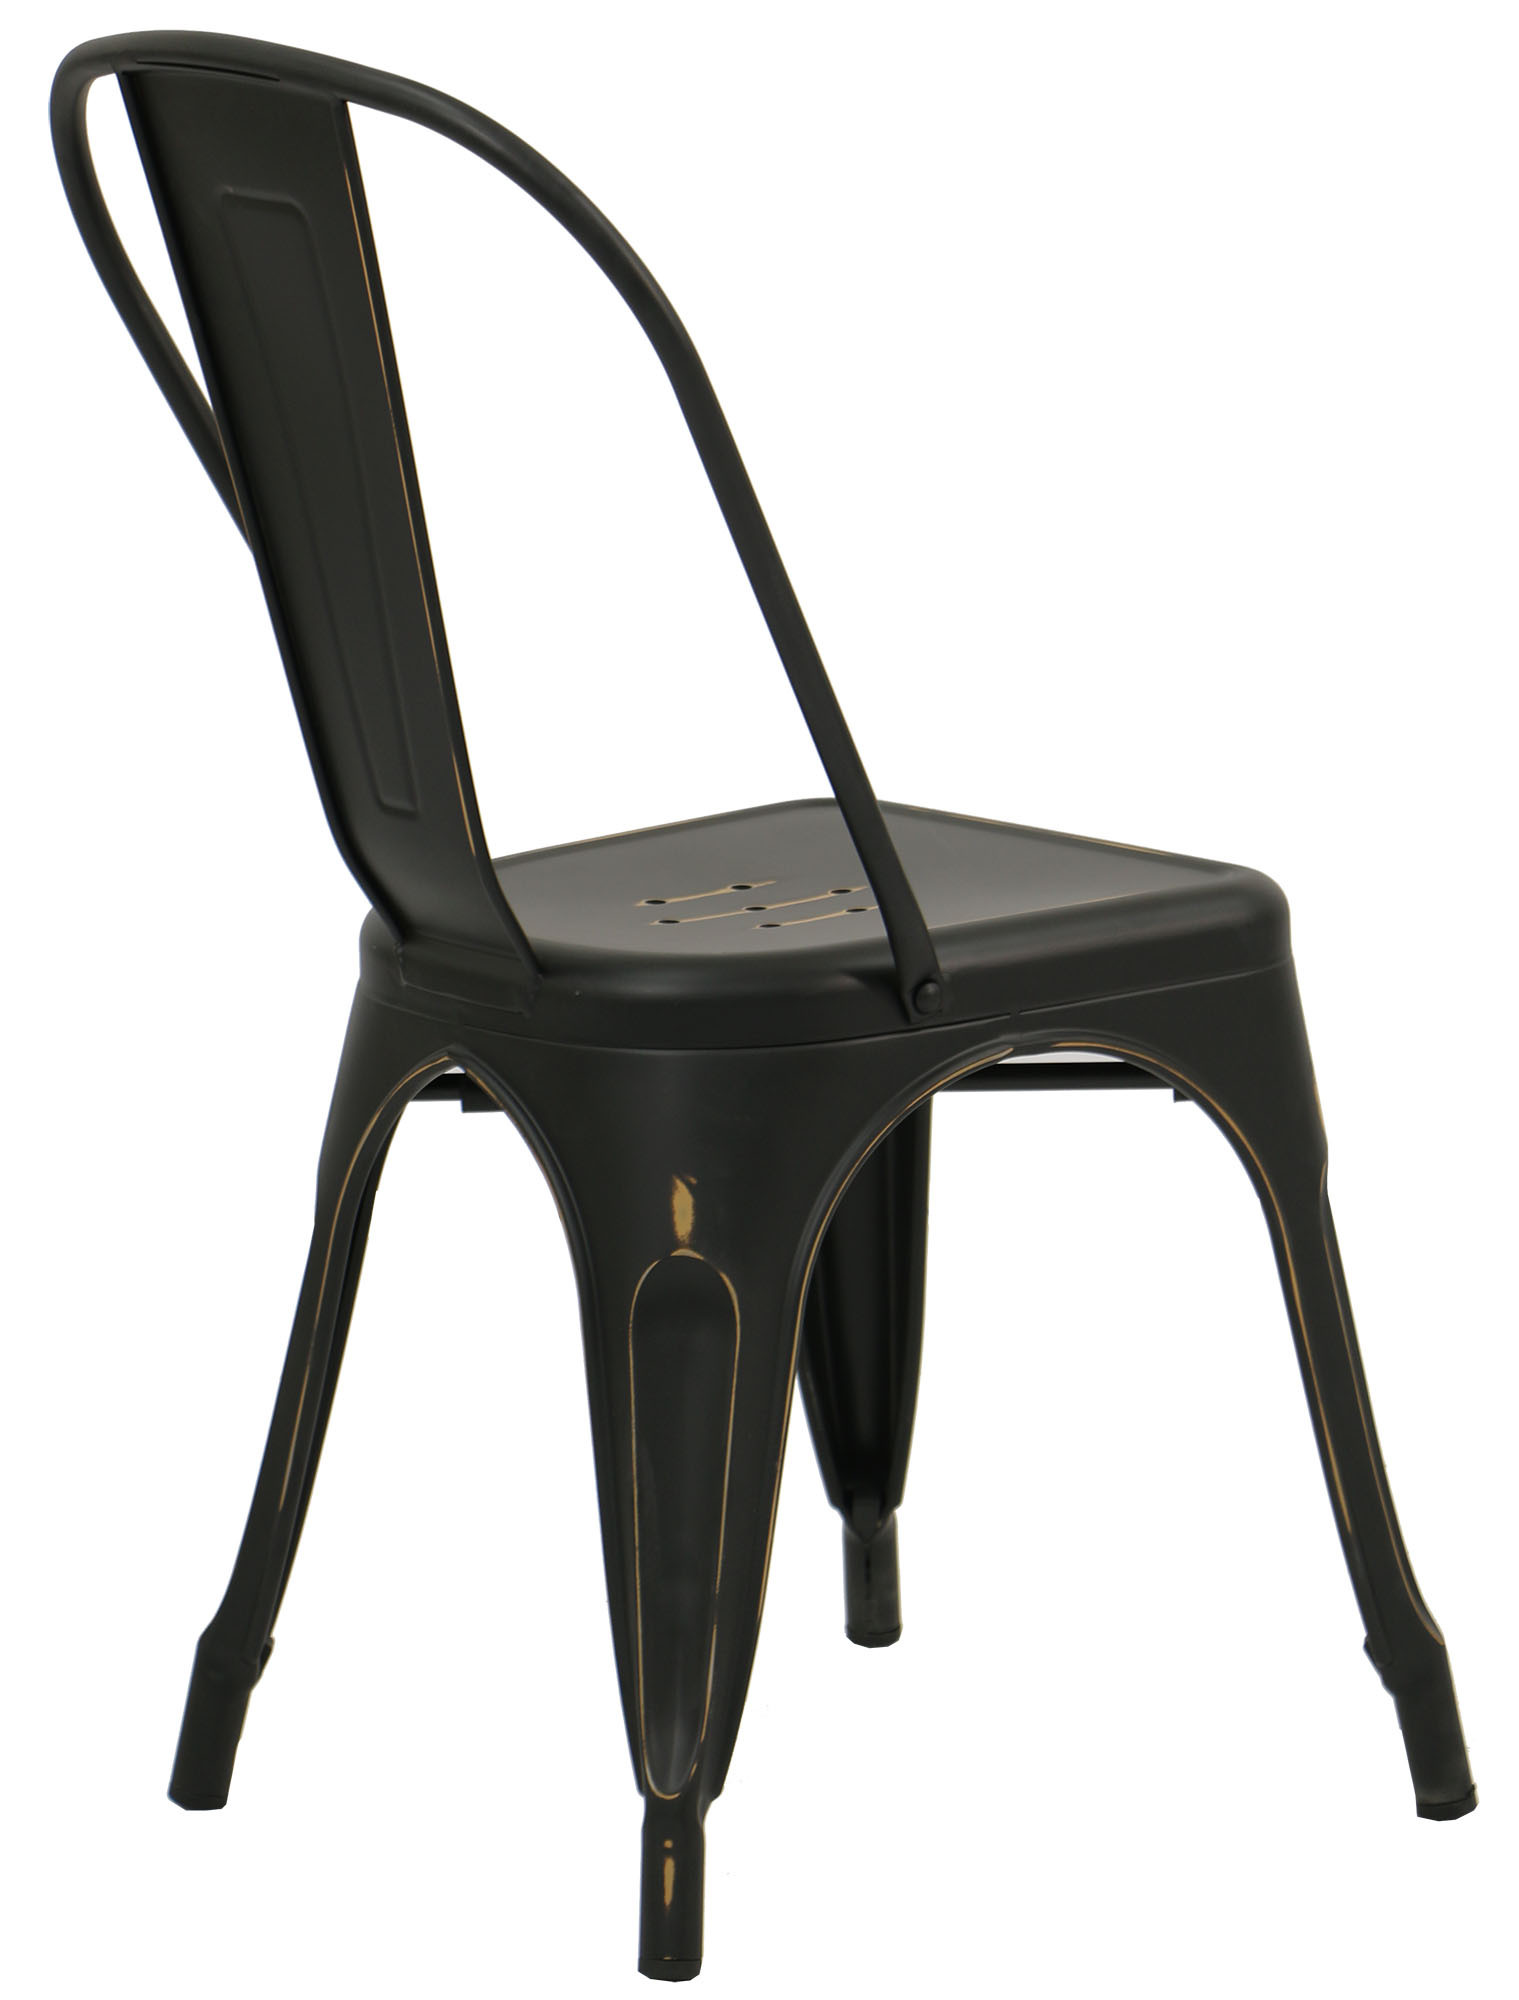 outdoor metal chair. Retro Metal Chair Antique Black. Display Gallery Item 1; 2 Outdoor